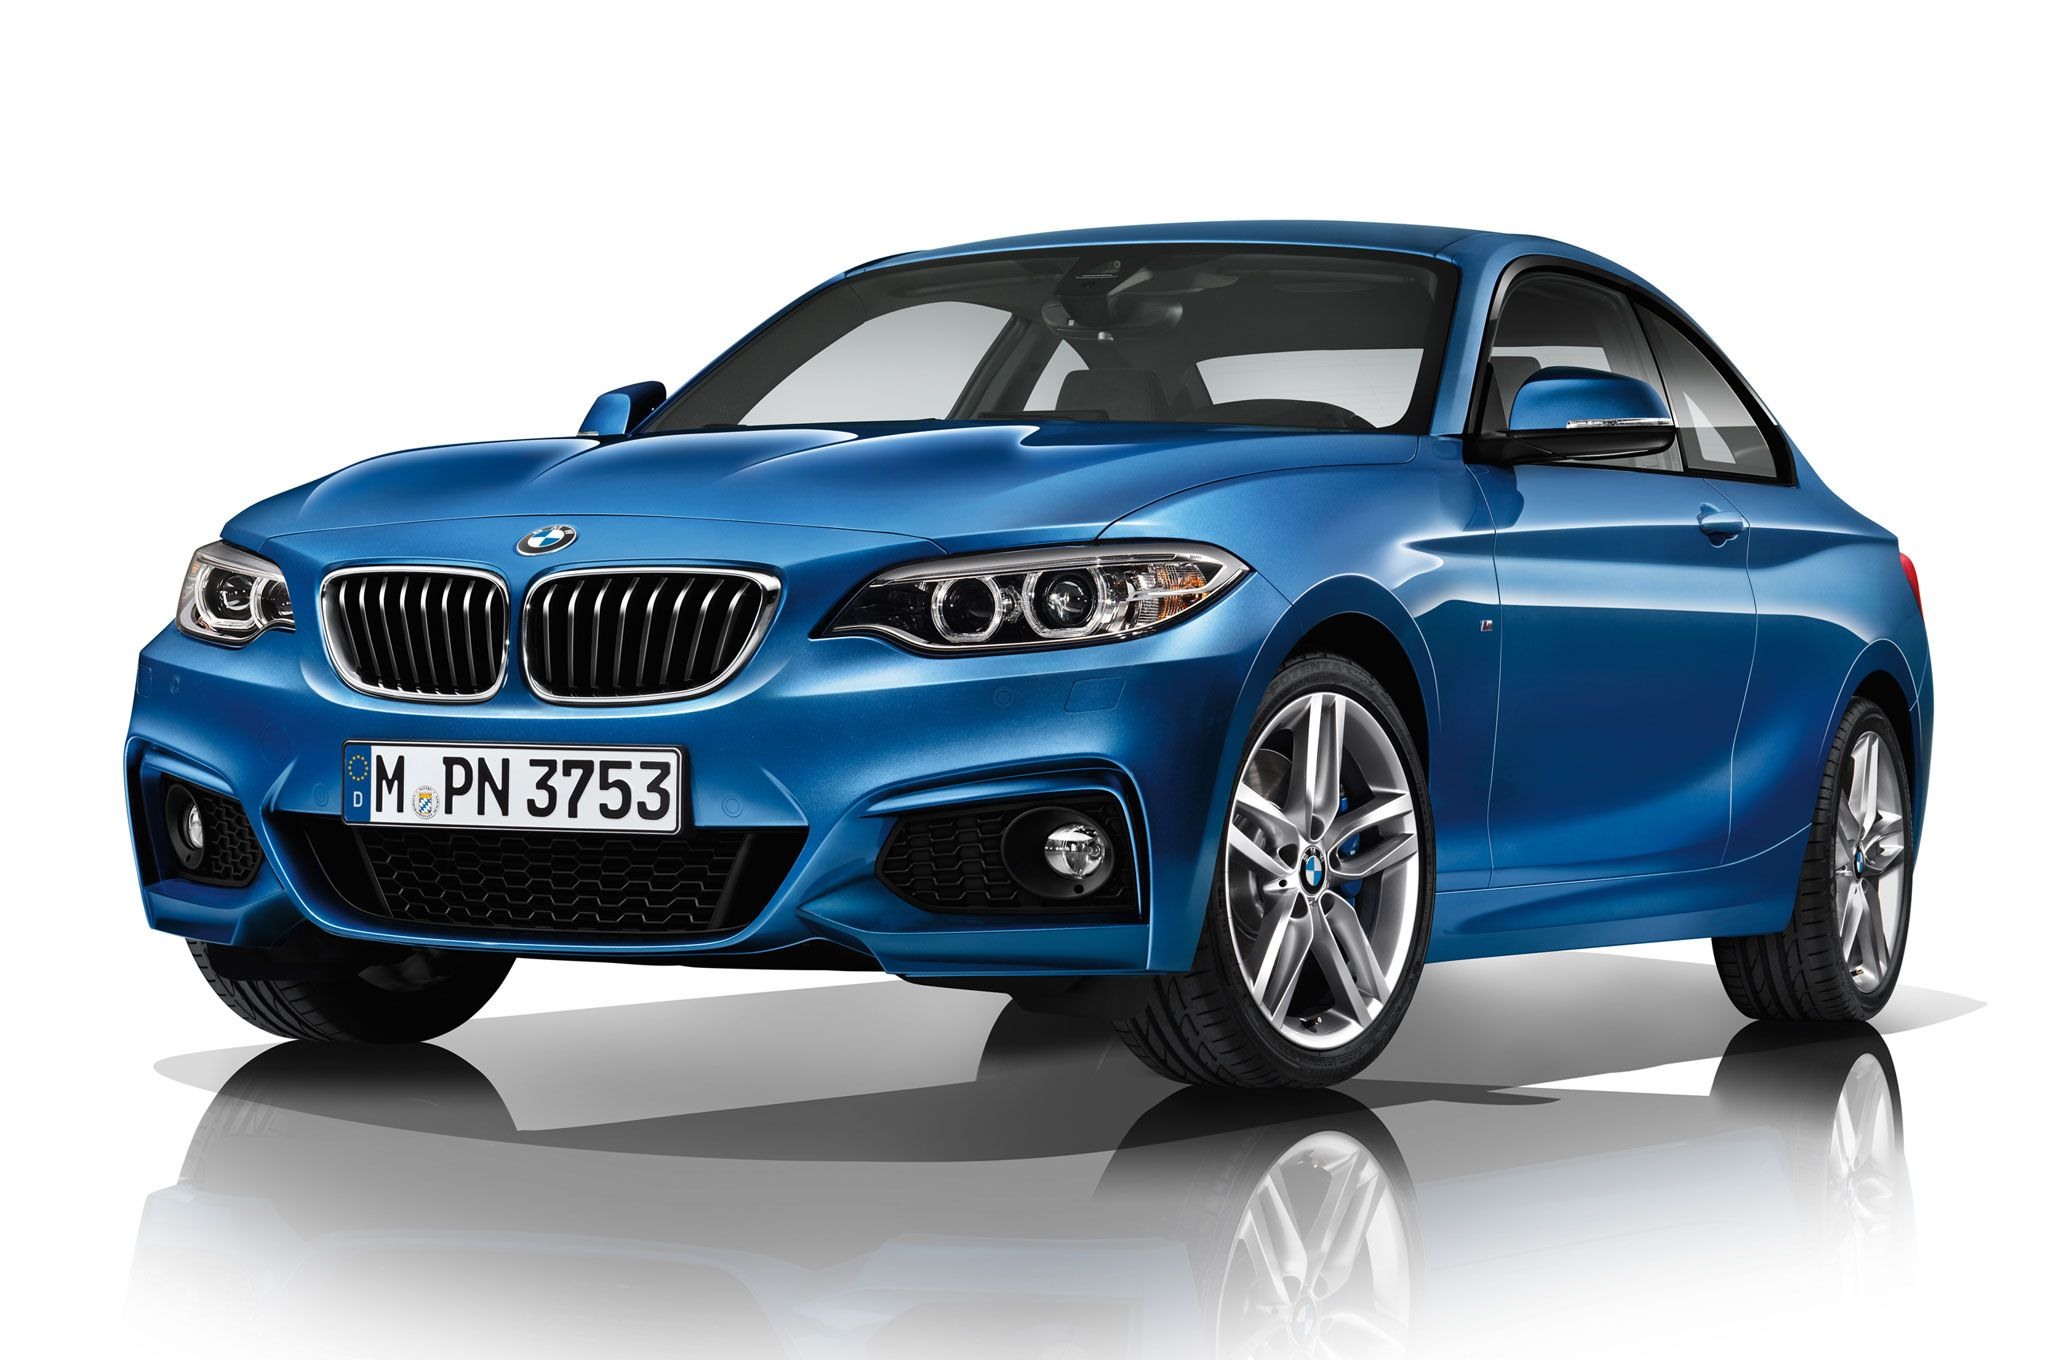 BMW 2 Series Bmw, Compact sports cars, Sports cars for sale